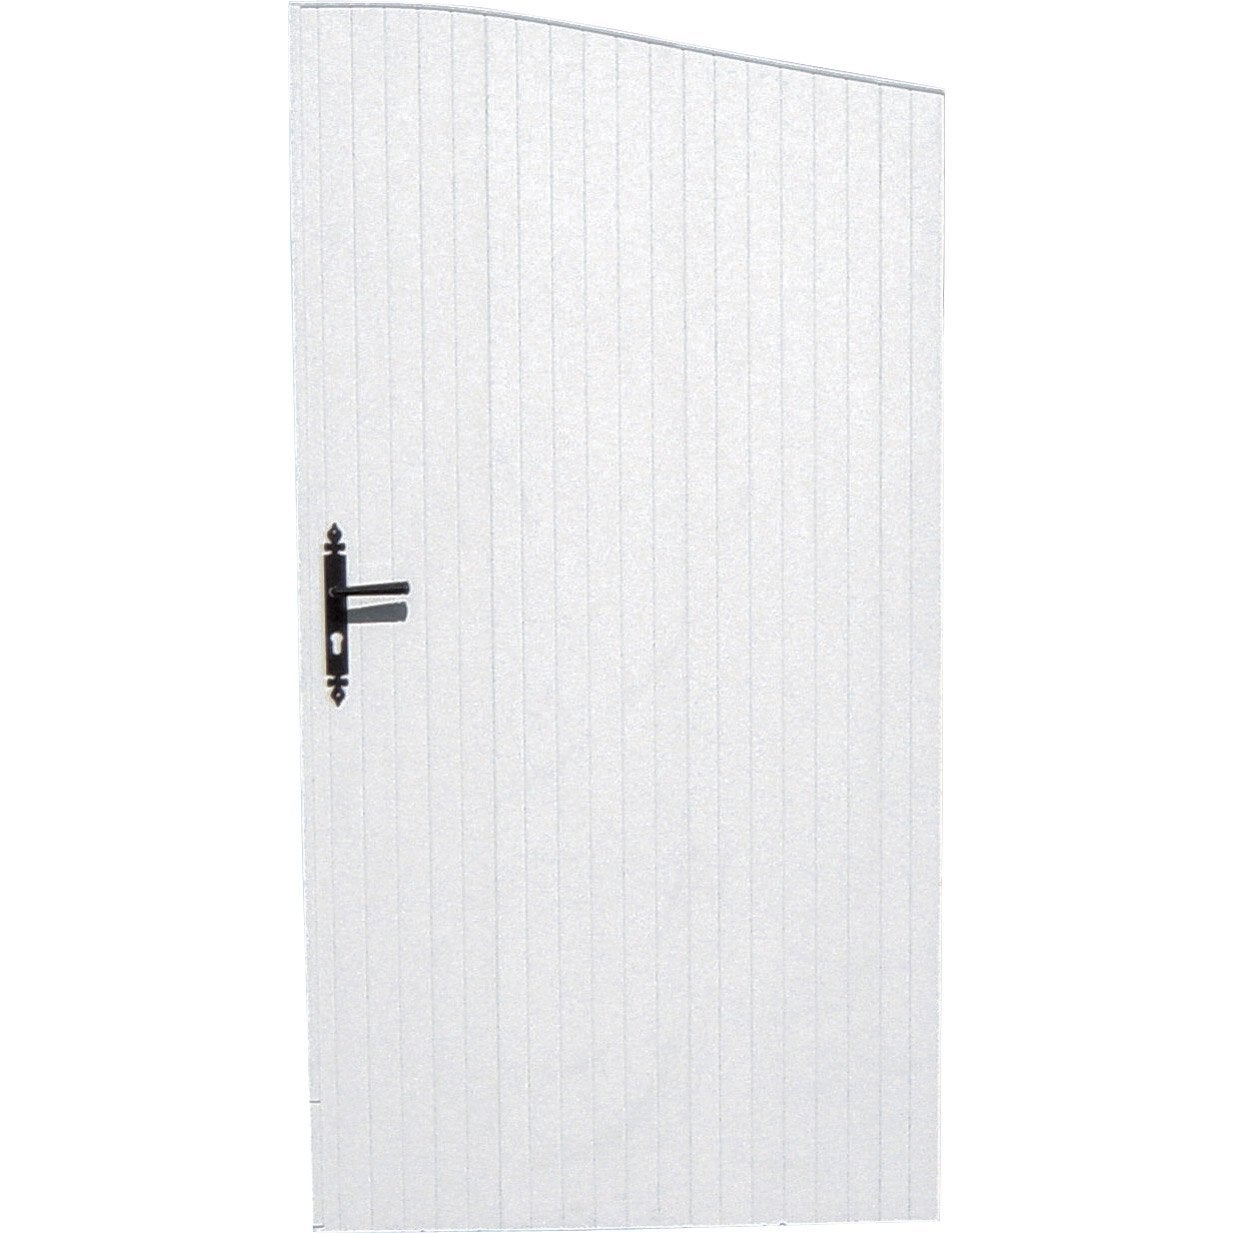 Portillon battant quiberon x cm blanc leroy for Portillon pvc